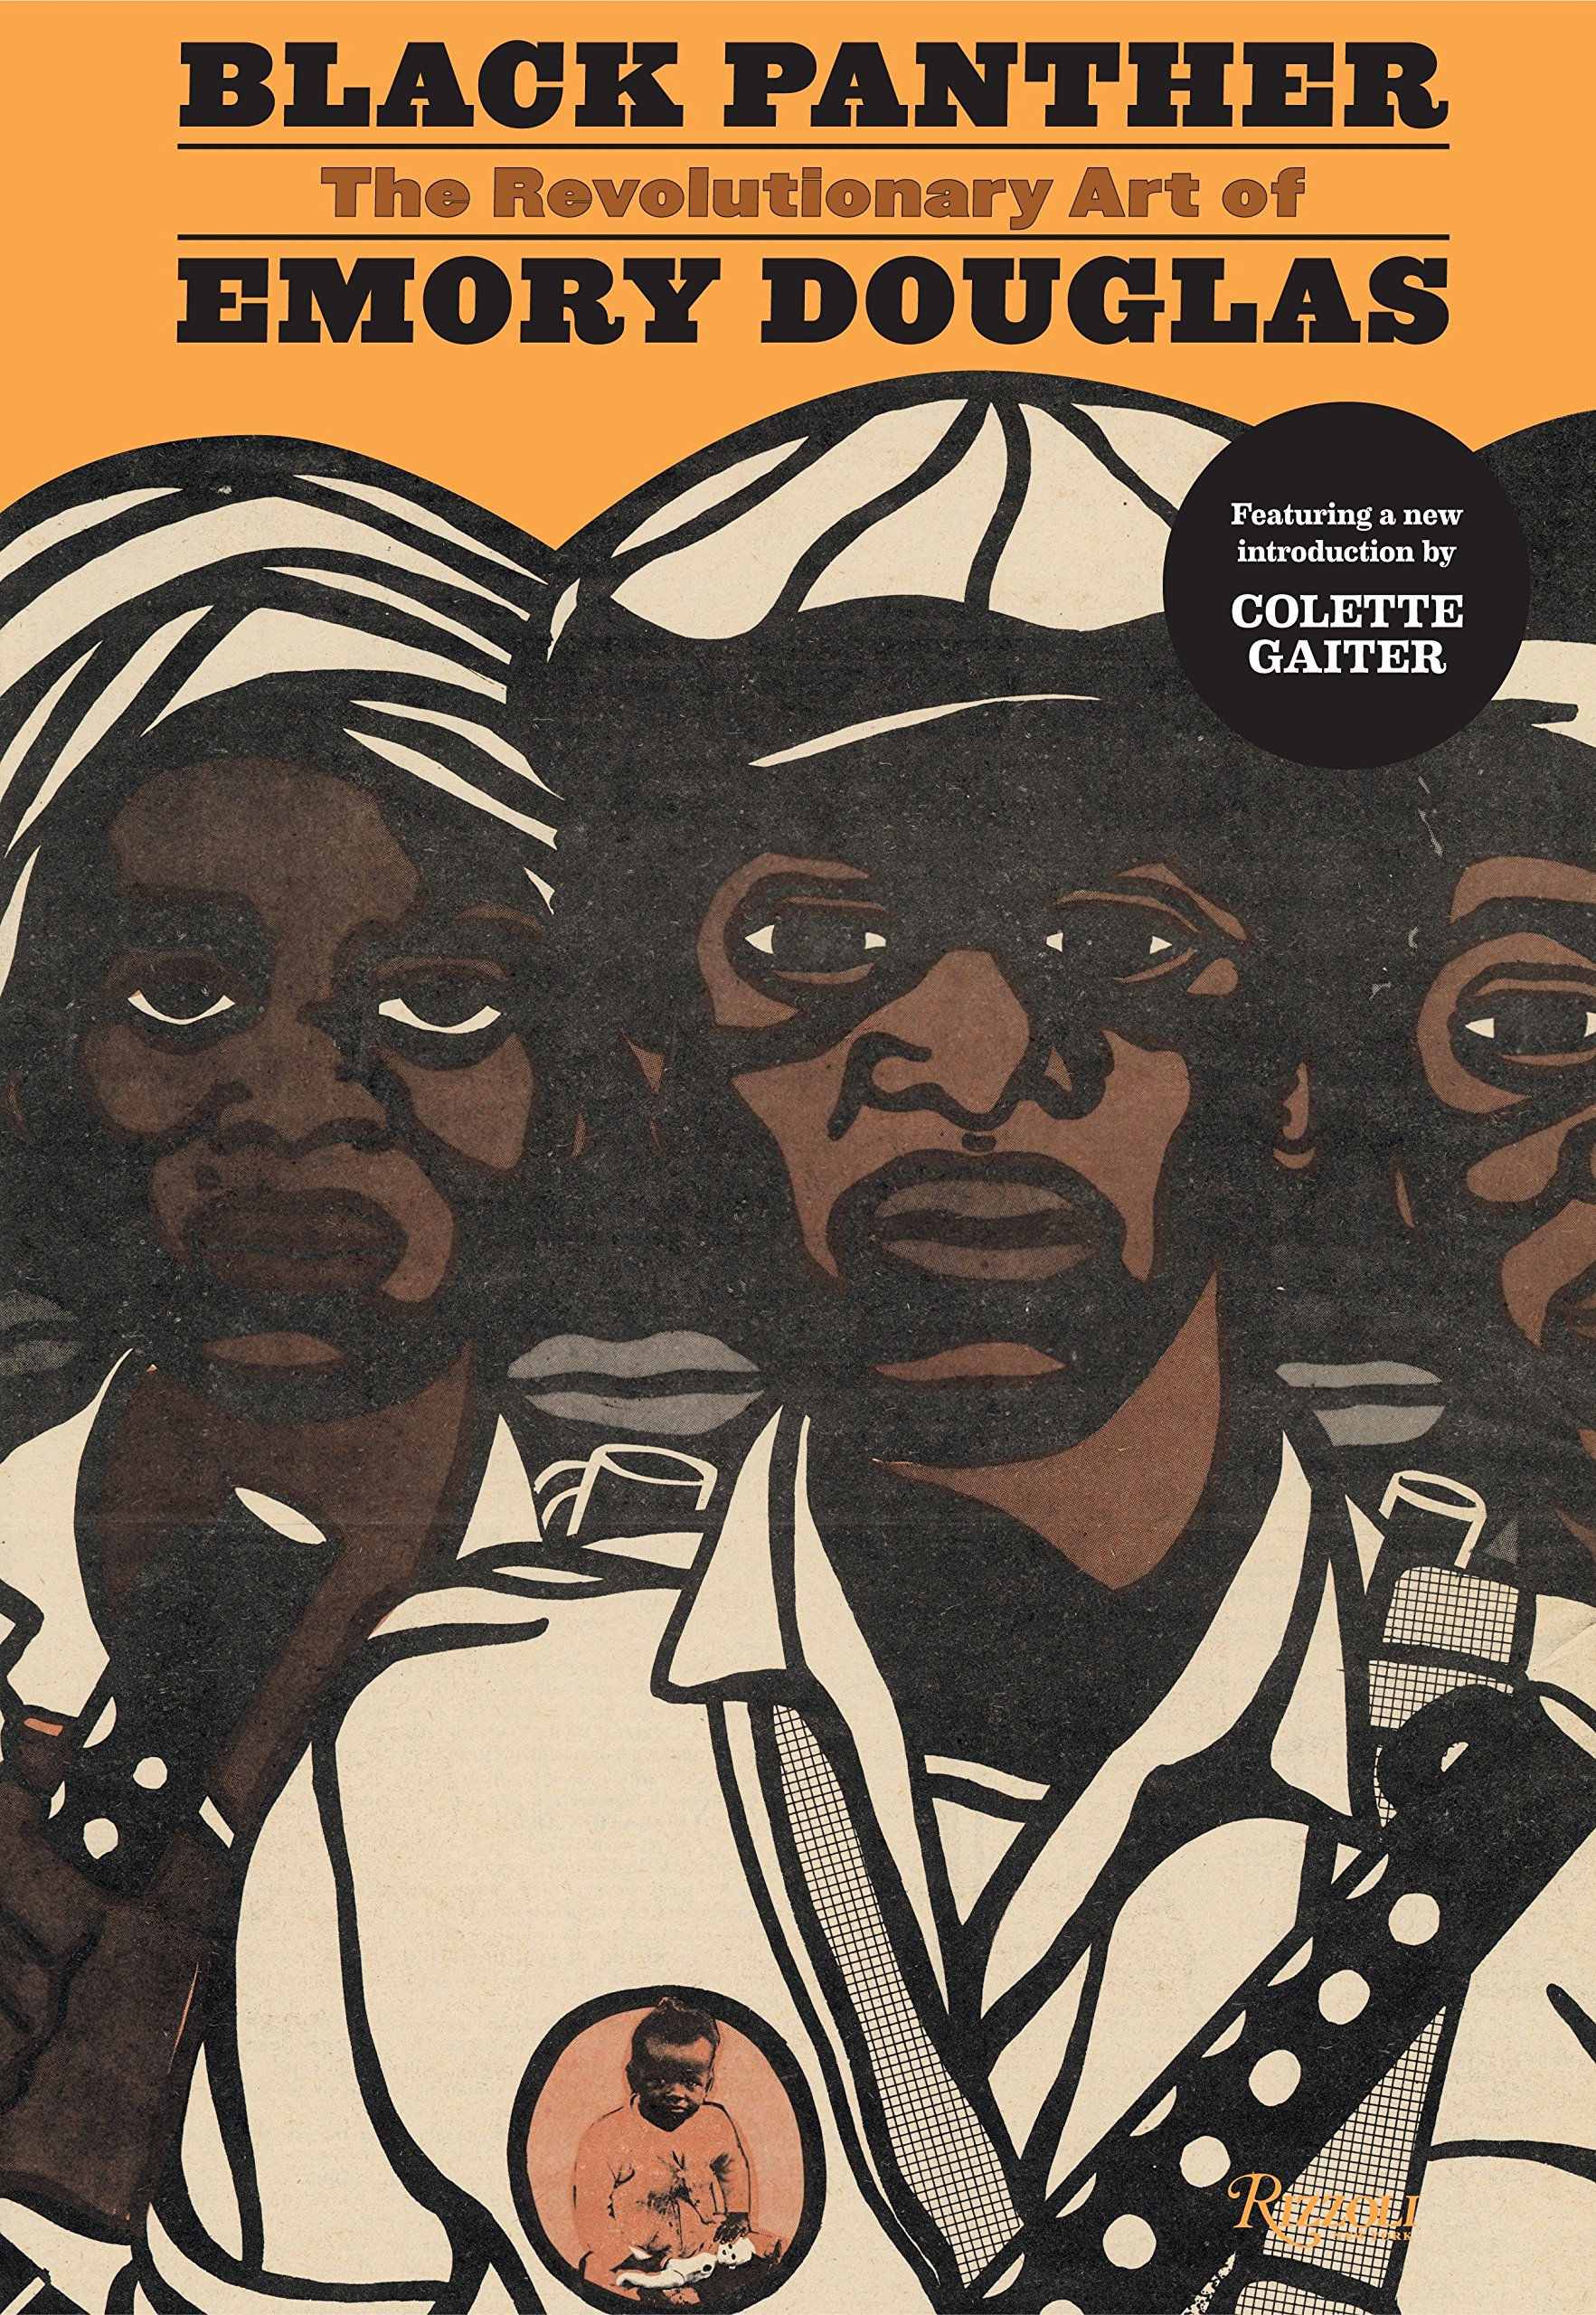 Book cover for Black Panther: The Revolutionary Art of Emory Douglas, showing three illustrations of black men